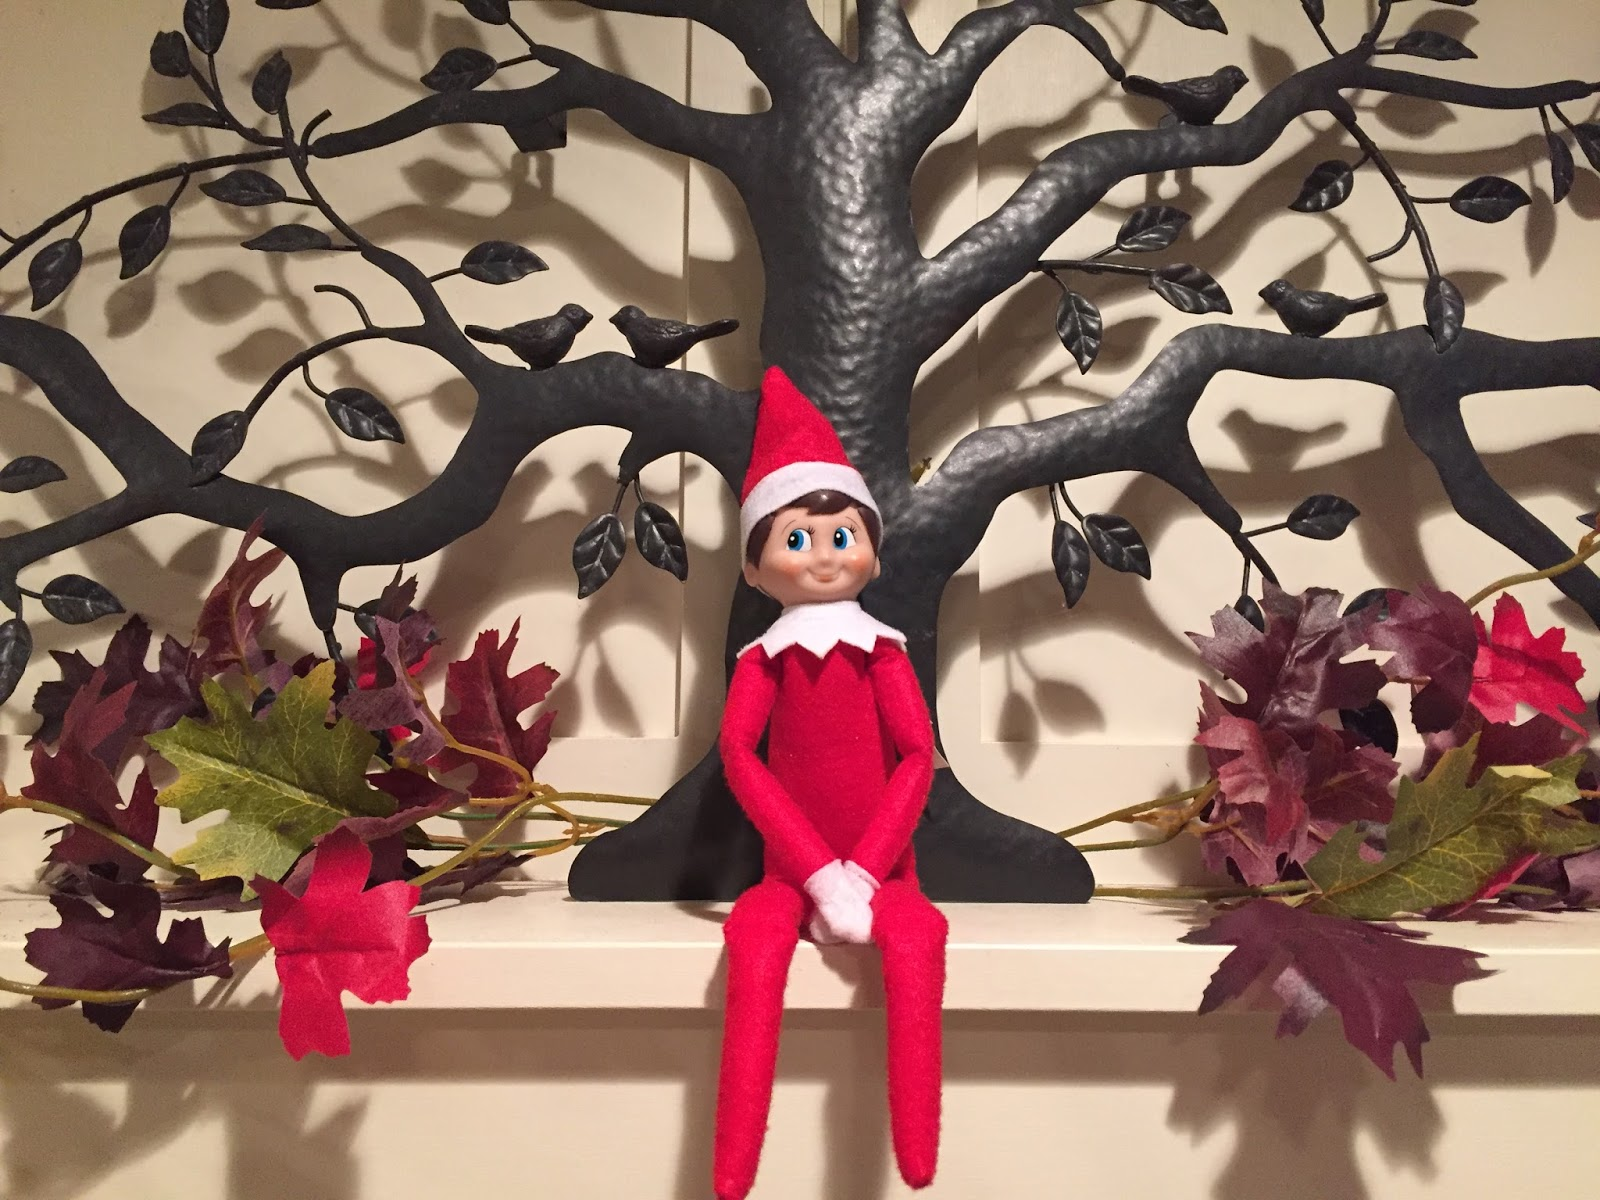 Our Boring Elf On The Shelf Boringly Sitting A Where Hell Likely Be For More Than One Morning In Row